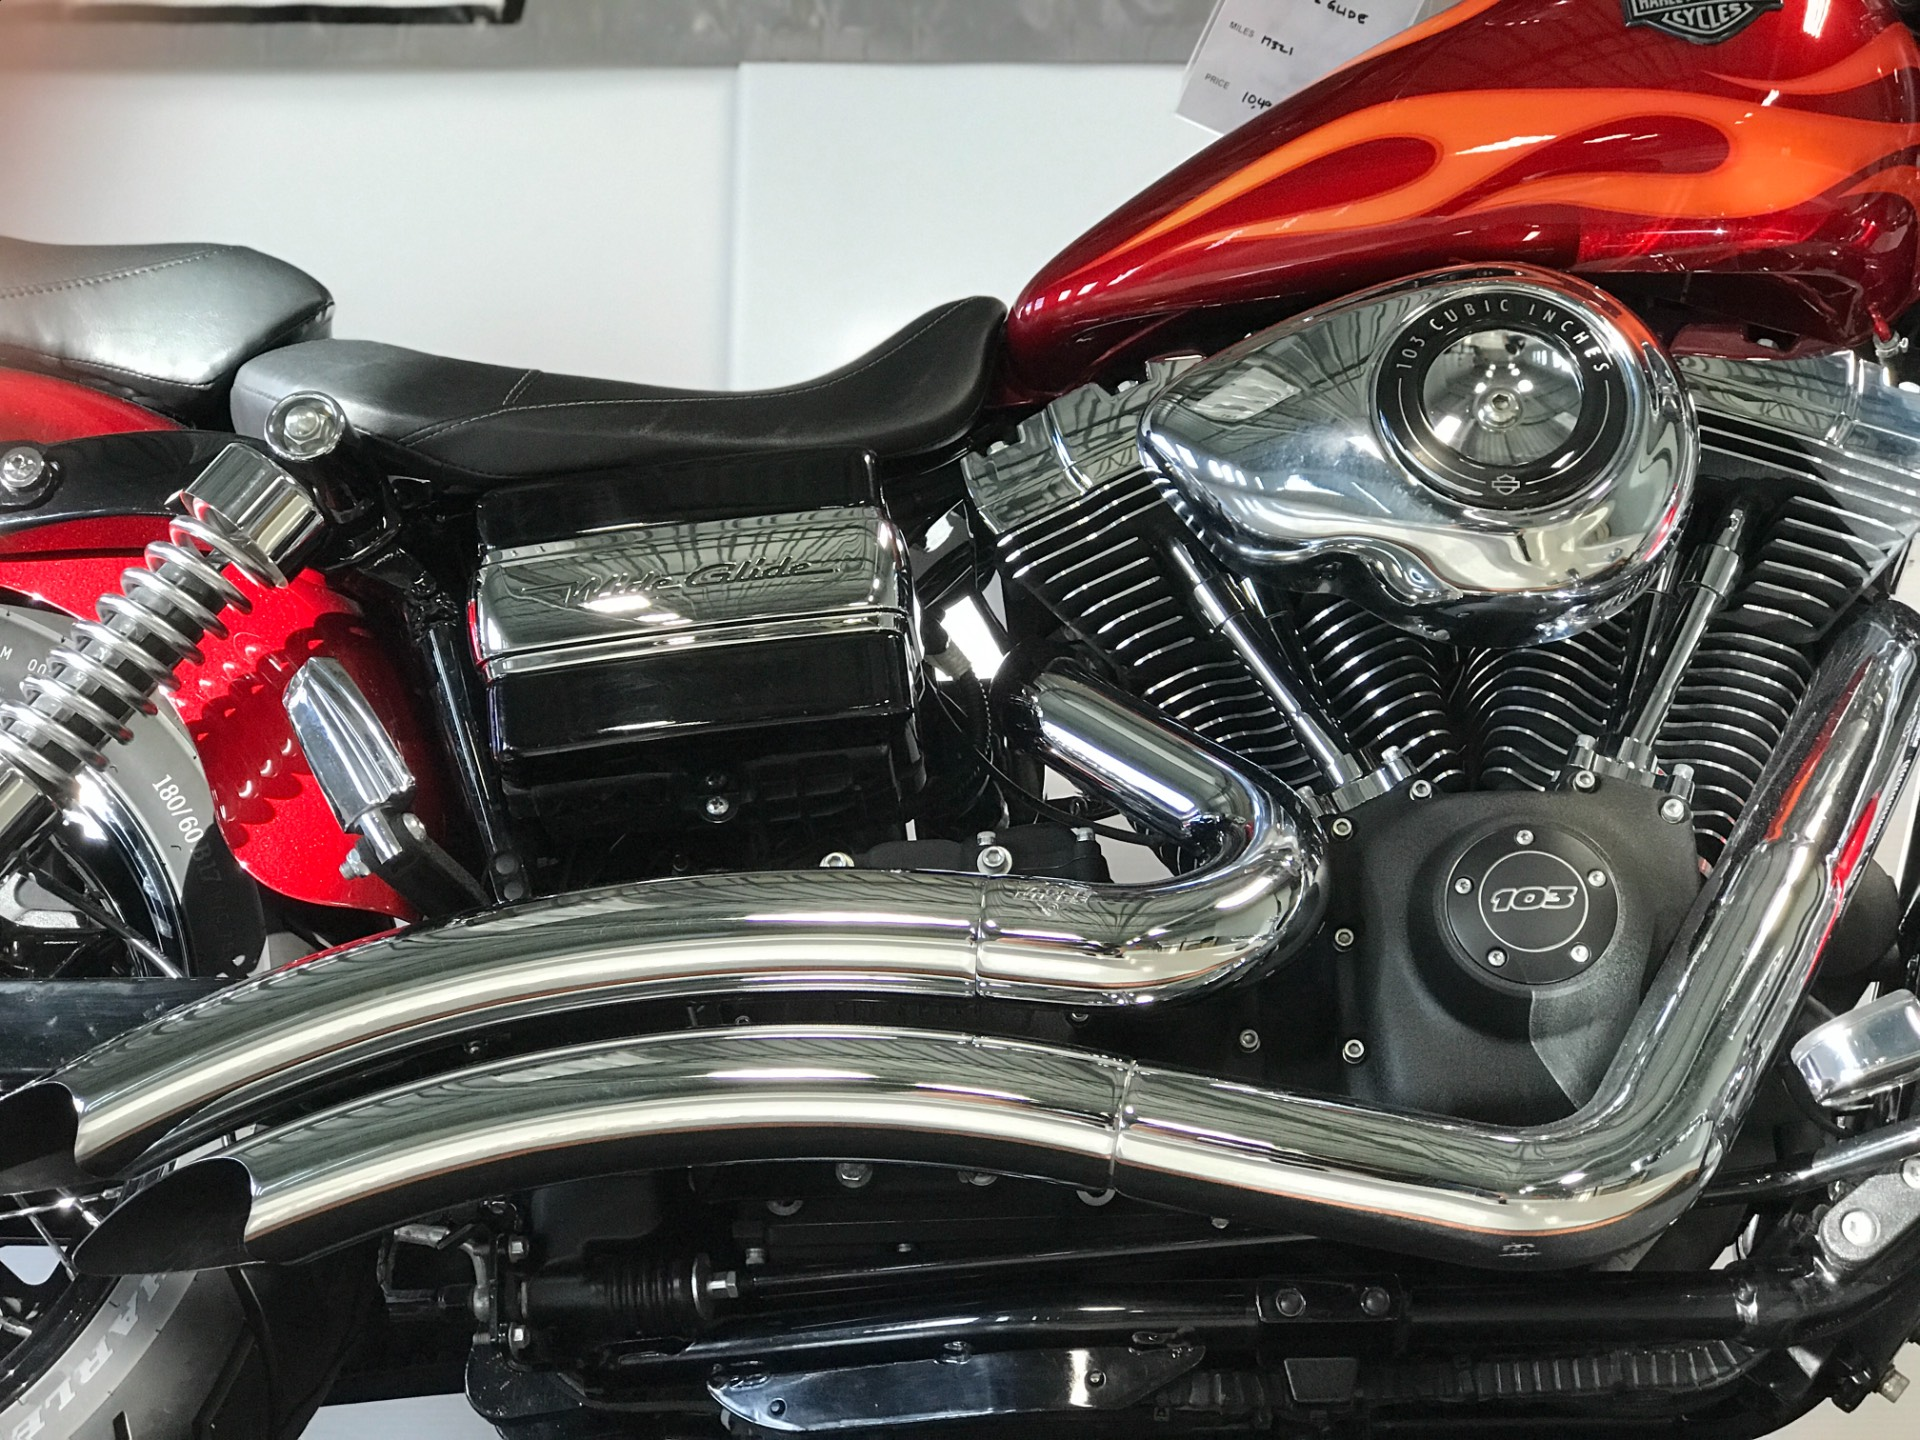 2012 Harley-Davidson Wide Glide in Waterford, Michigan